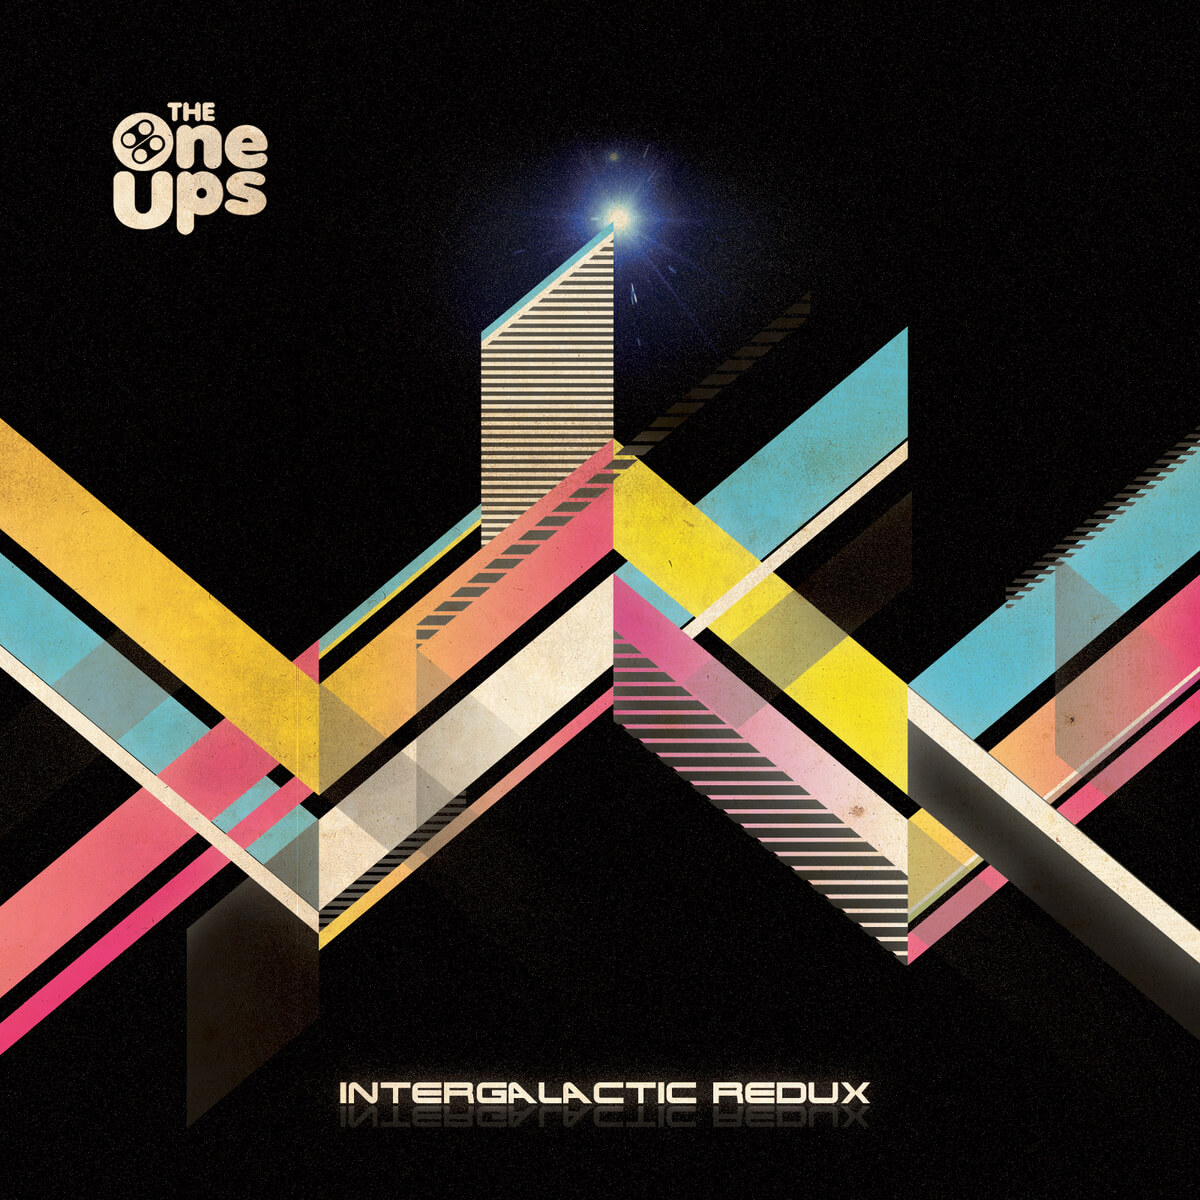 The OneUps - Intergalactic Redux